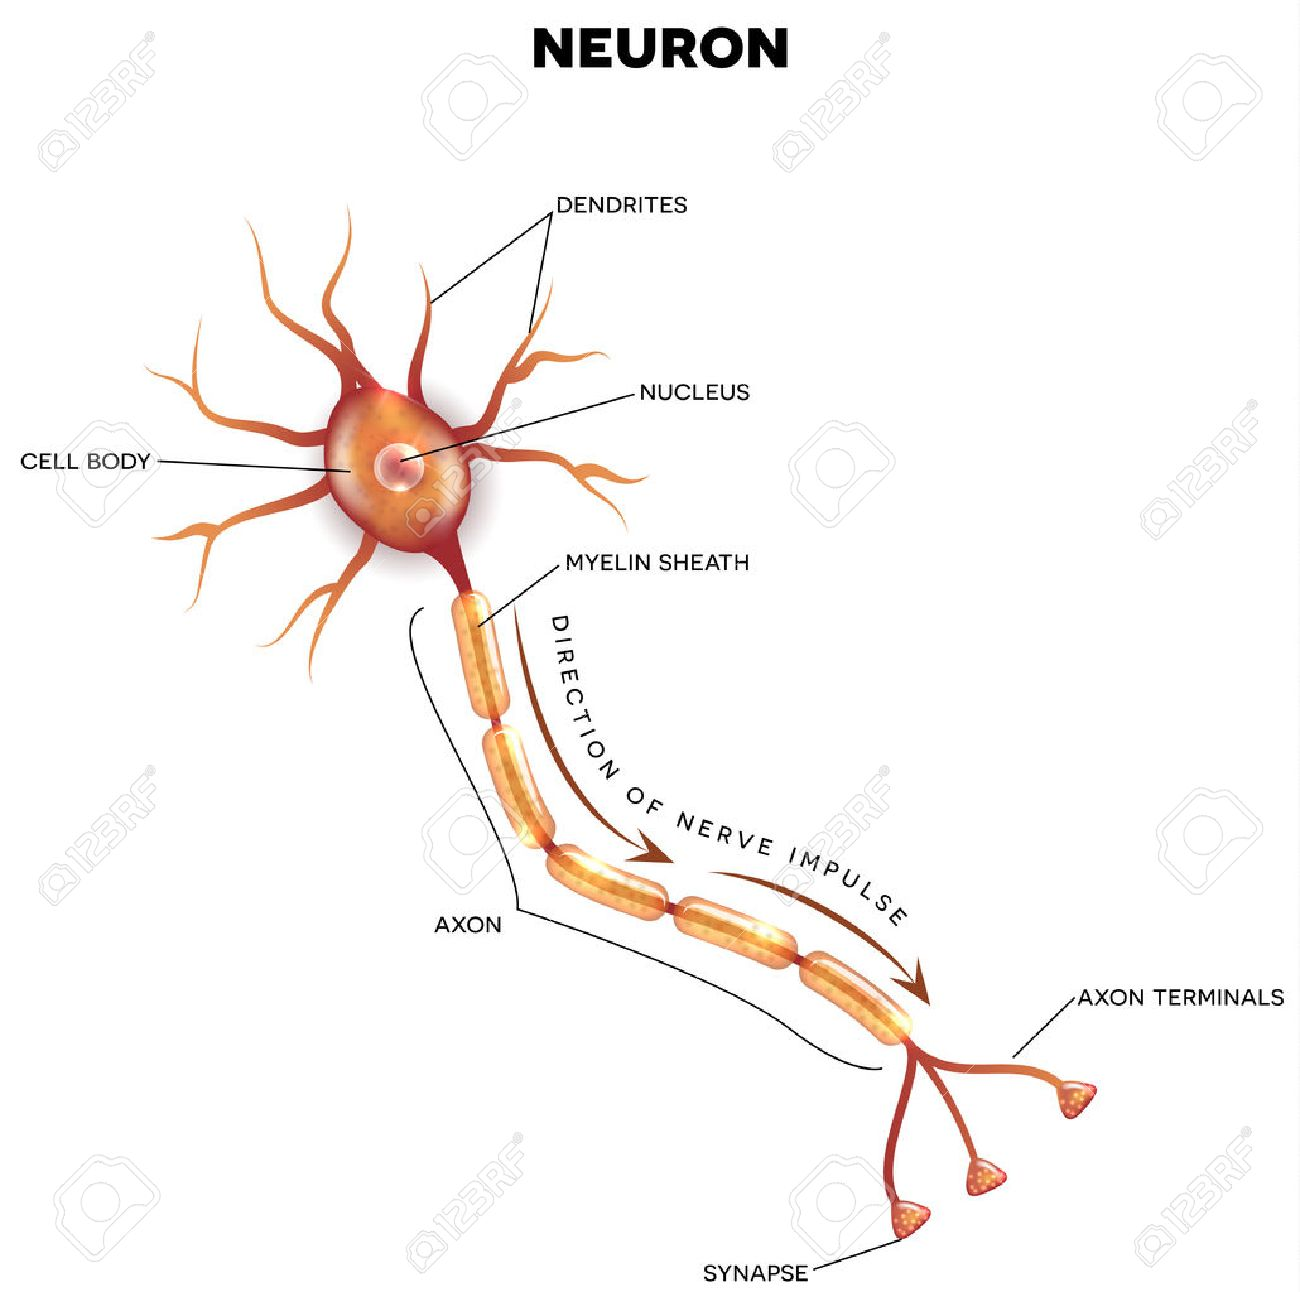 labeled diagram of the neuron, nerve cell that is the main part